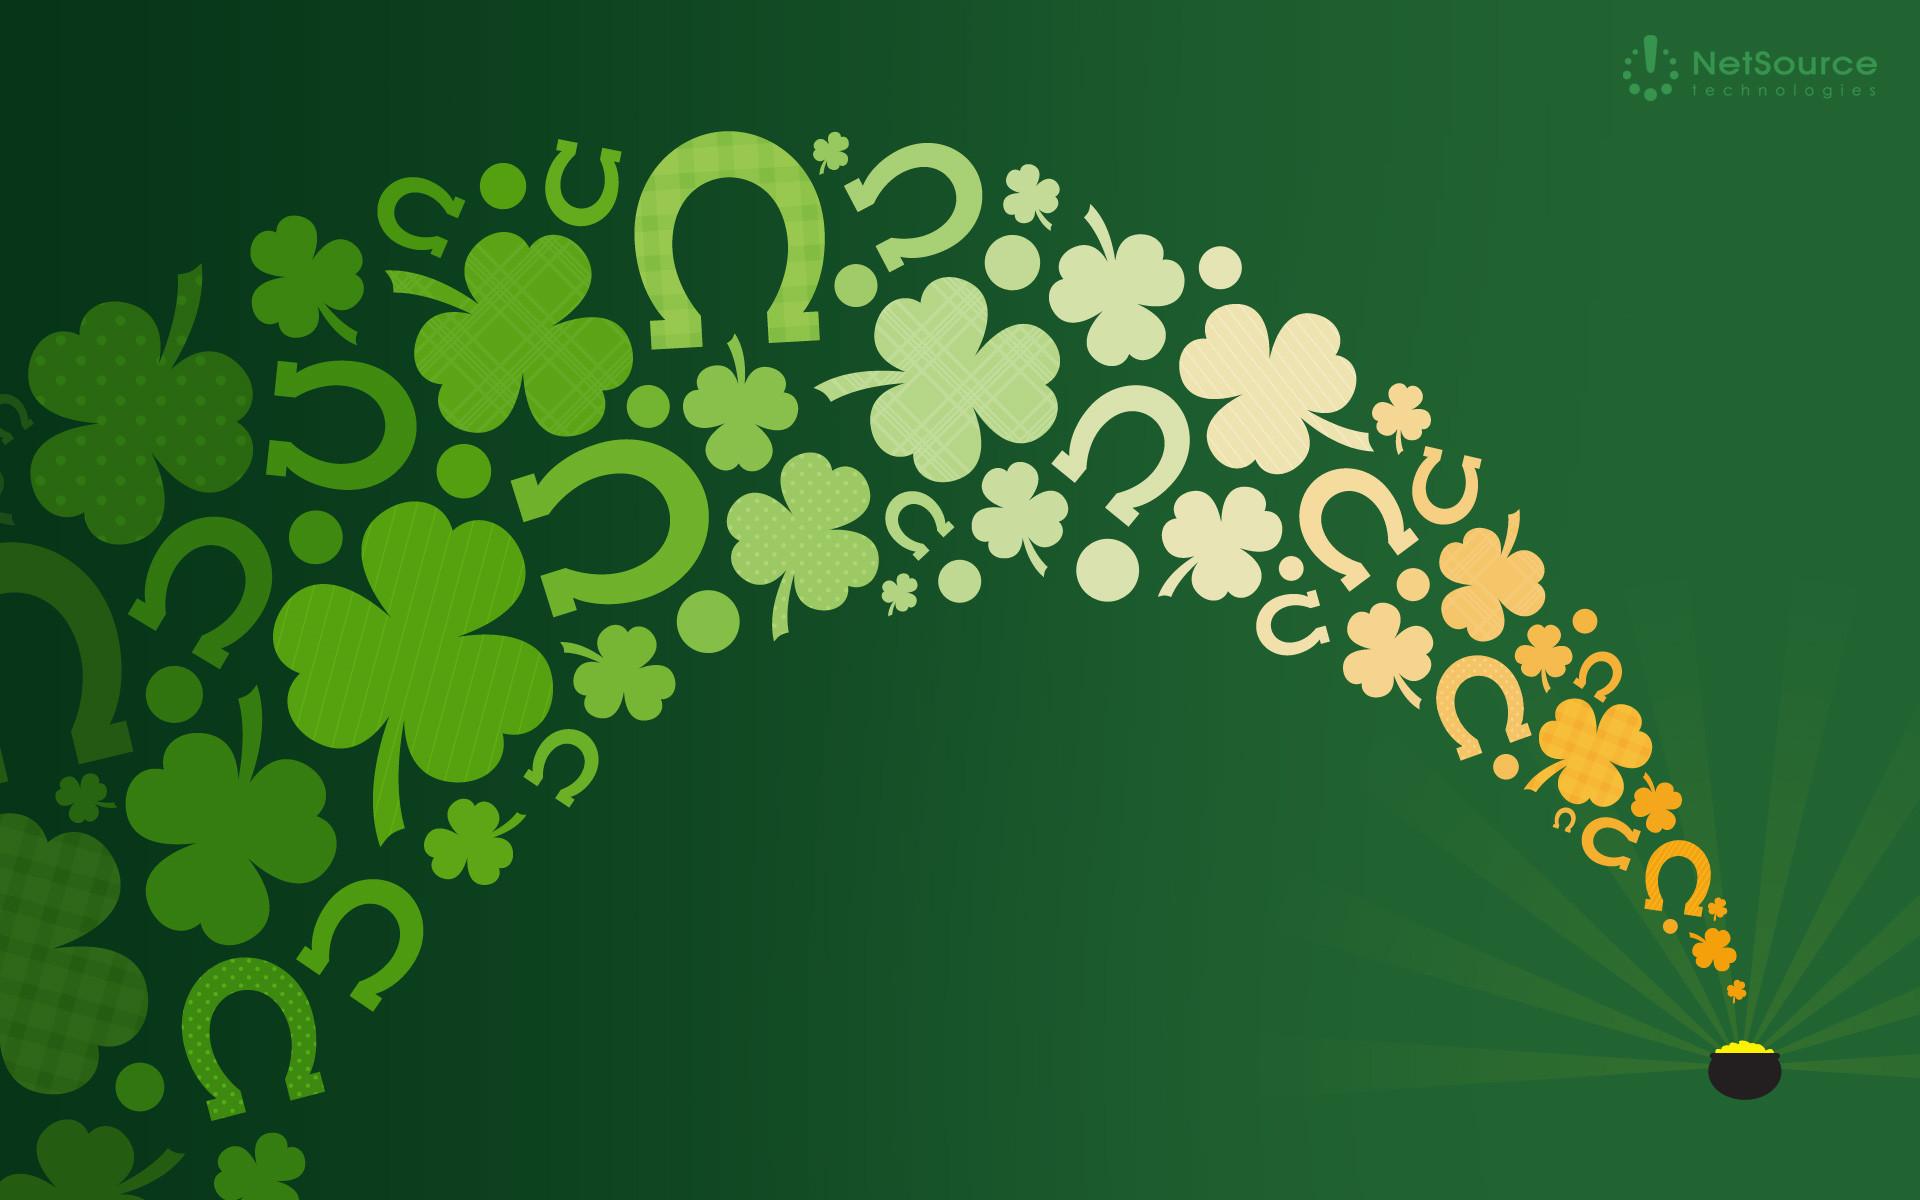 Snoopy Wallpaper St Patricks Day 43 images 1920x1200